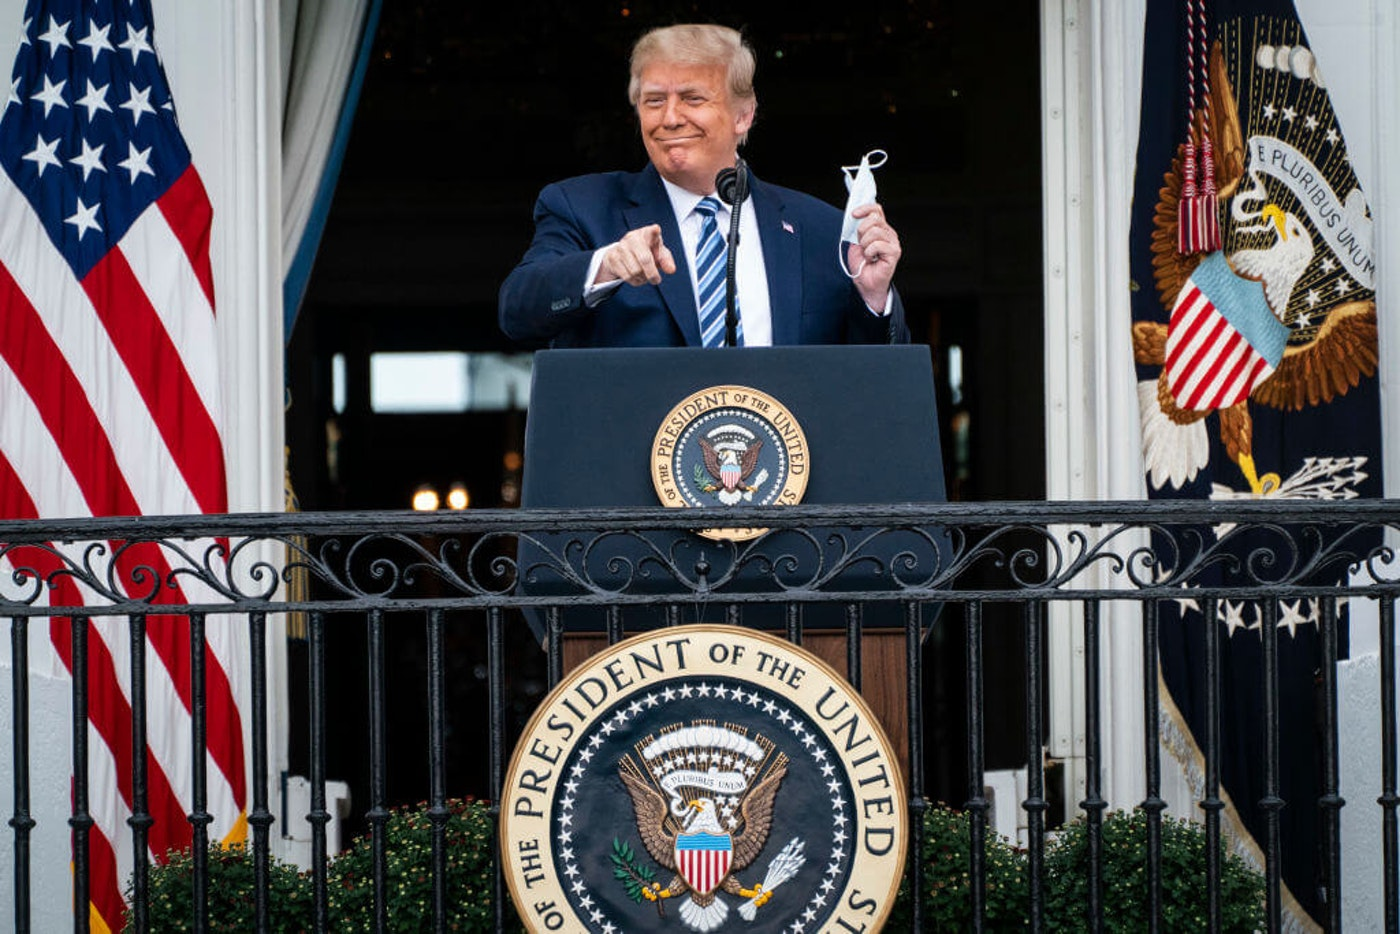 President Donald J. Trump remains at the White House after testing positive for covid-19. (Photo by Jabin Botsford/The Washington Post via Getty Images)